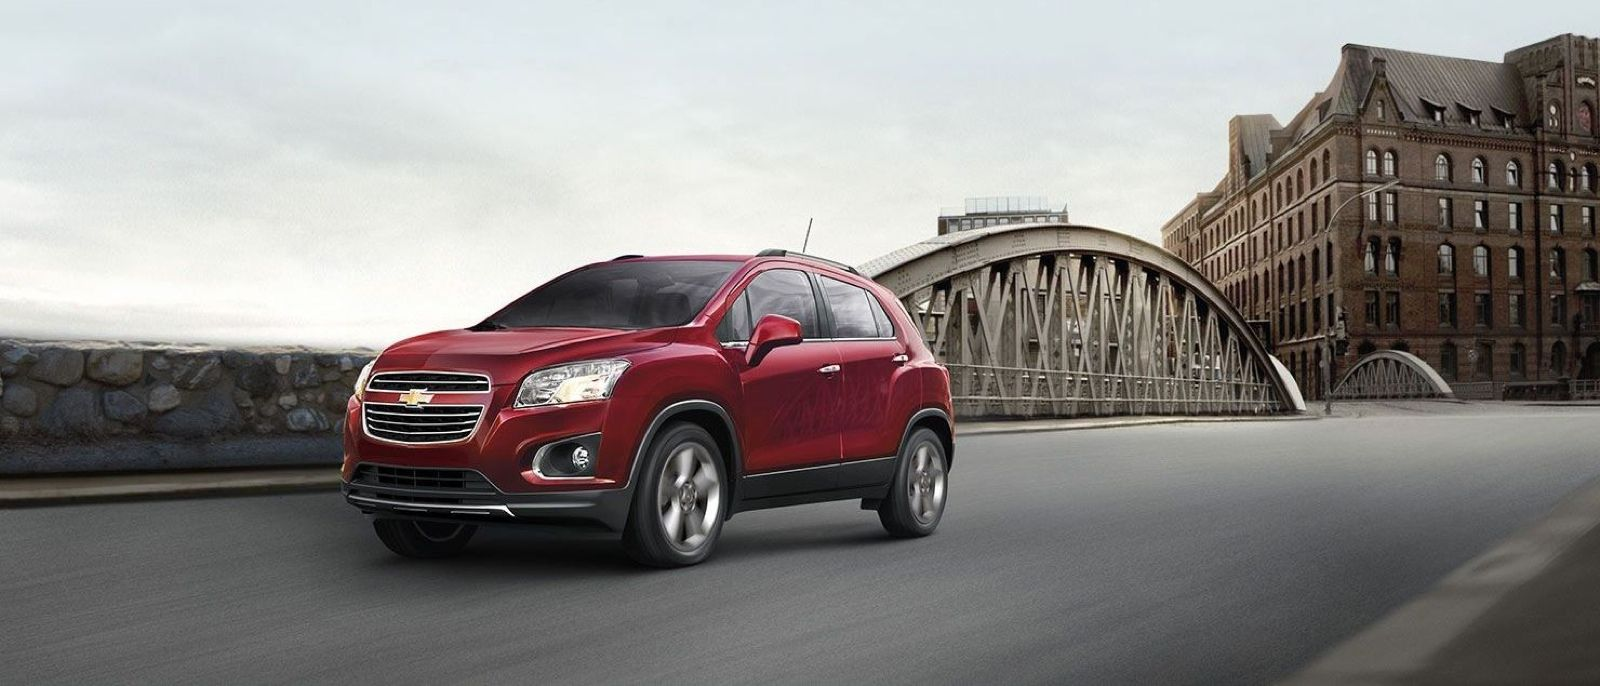 2015 Chevy Trax Getting To Know Gm S New Crossover Chevy